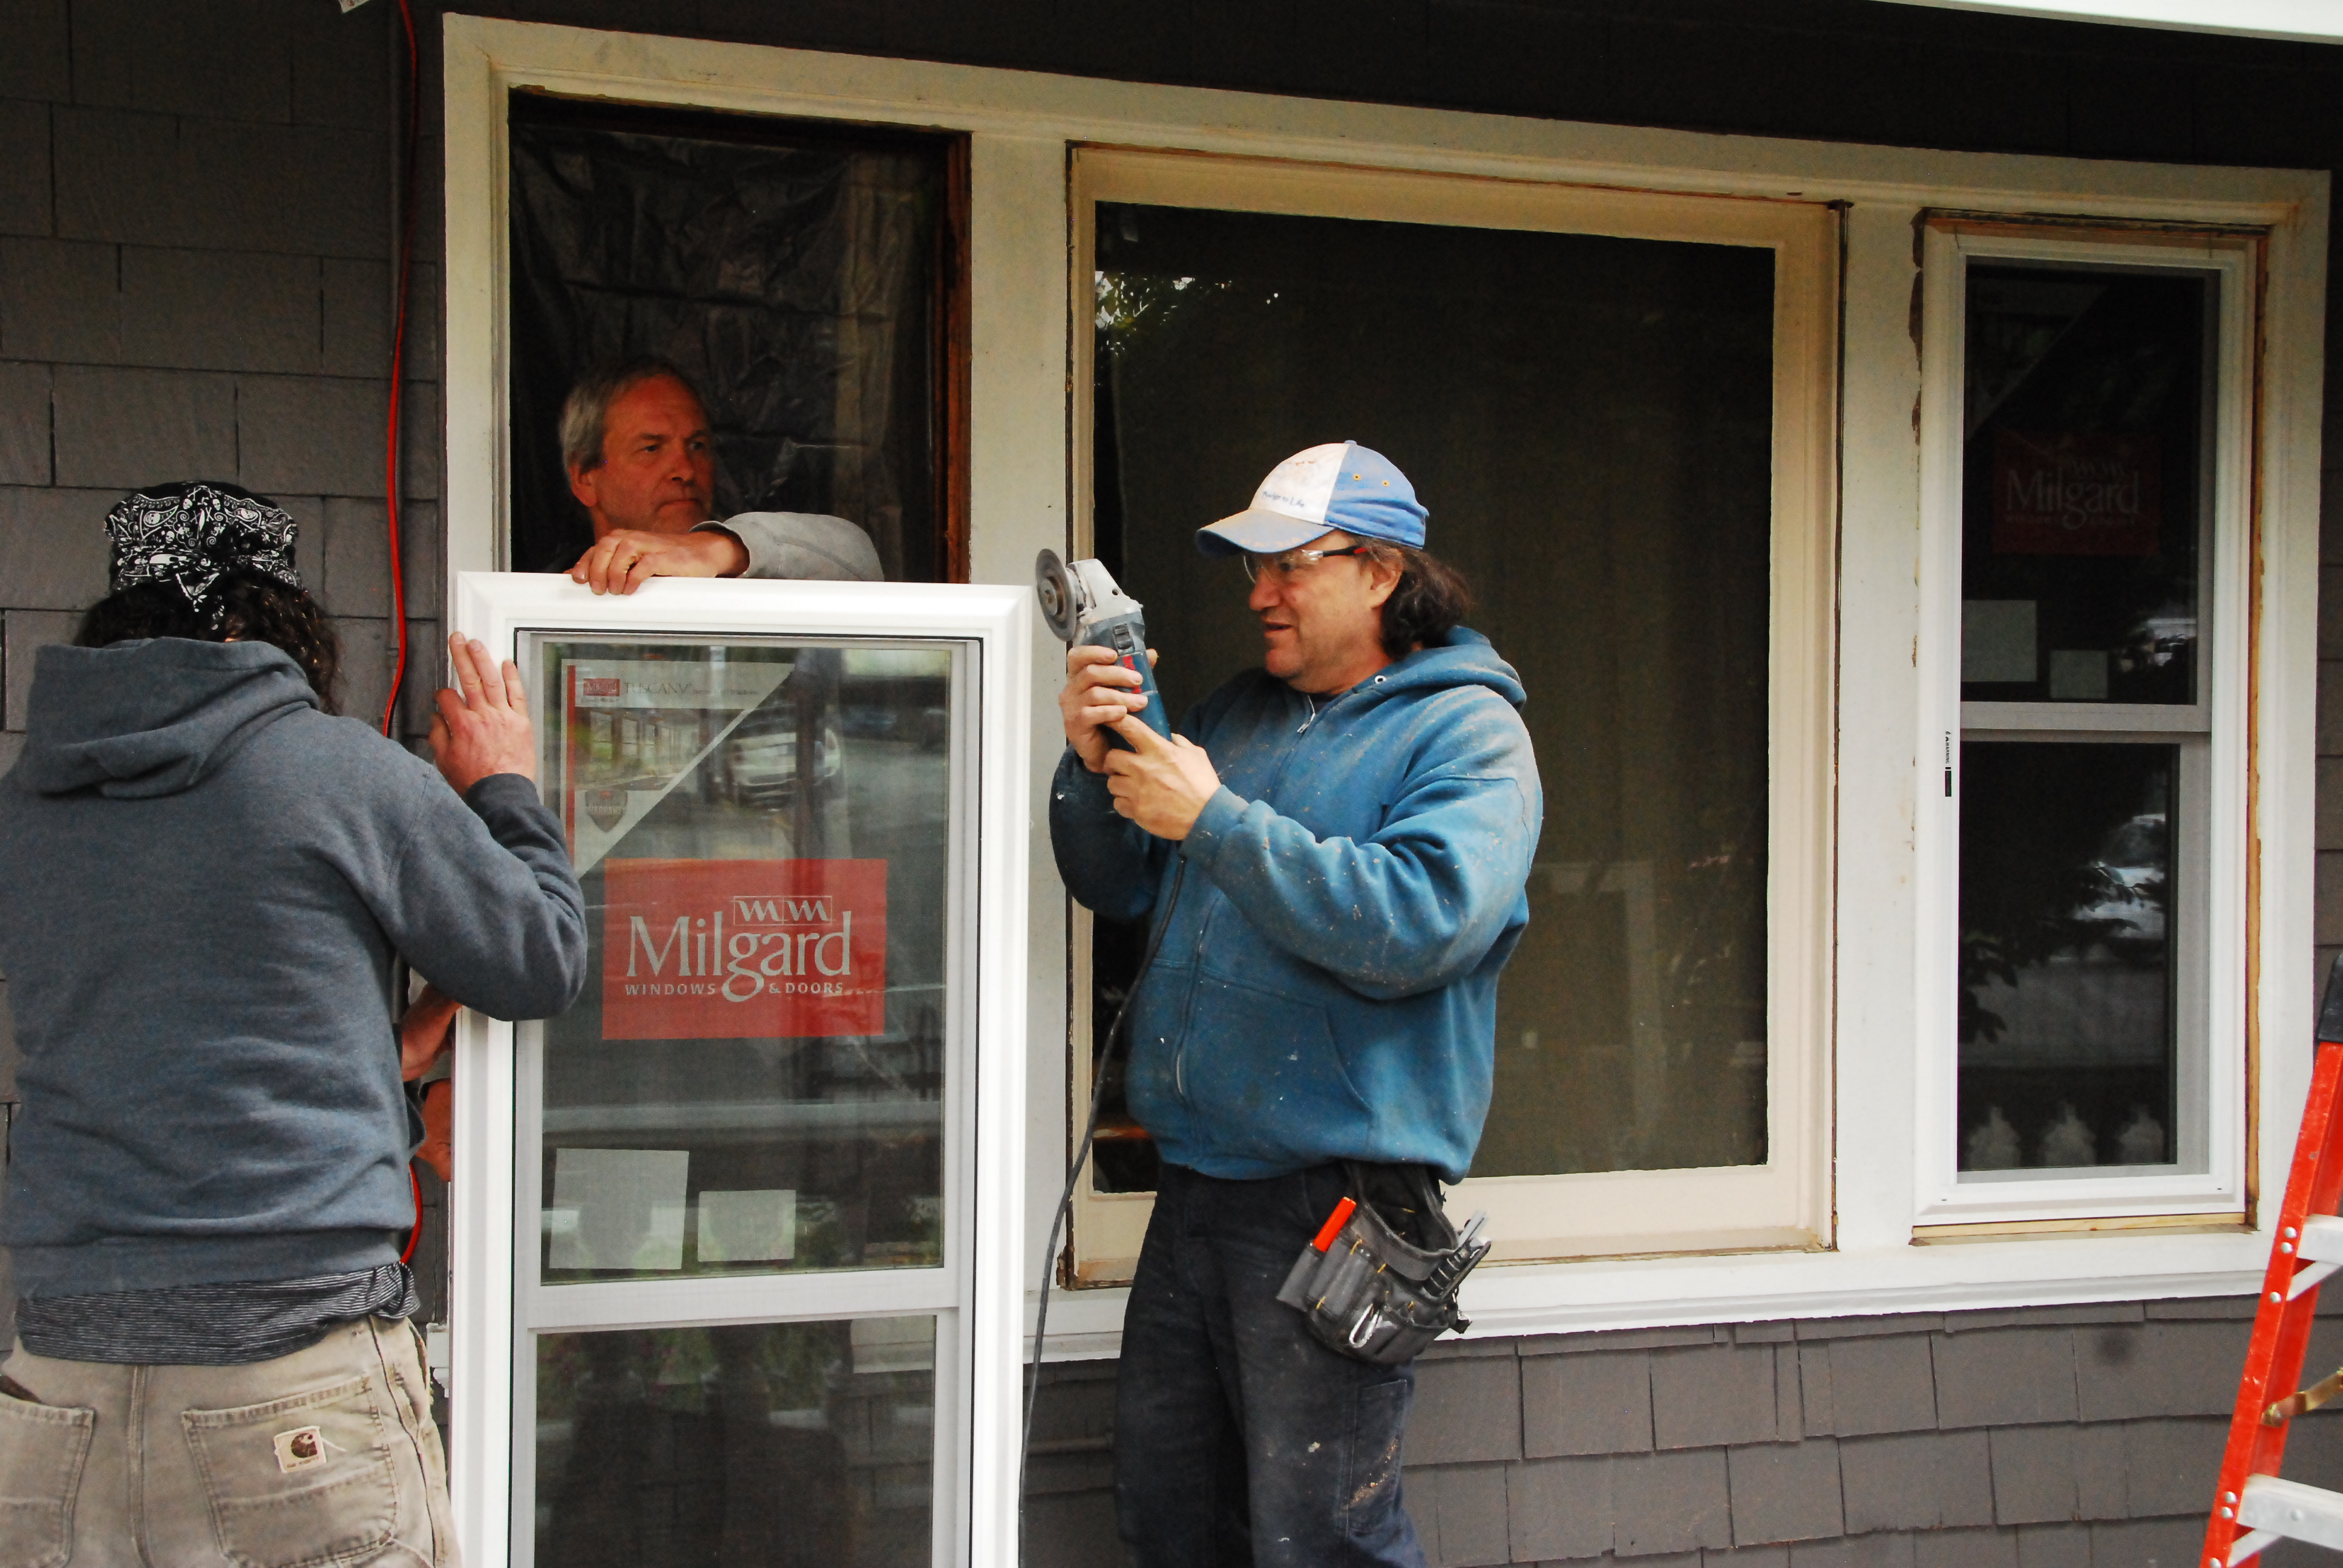 Milgard vinyl windows are installed for energy efficiency